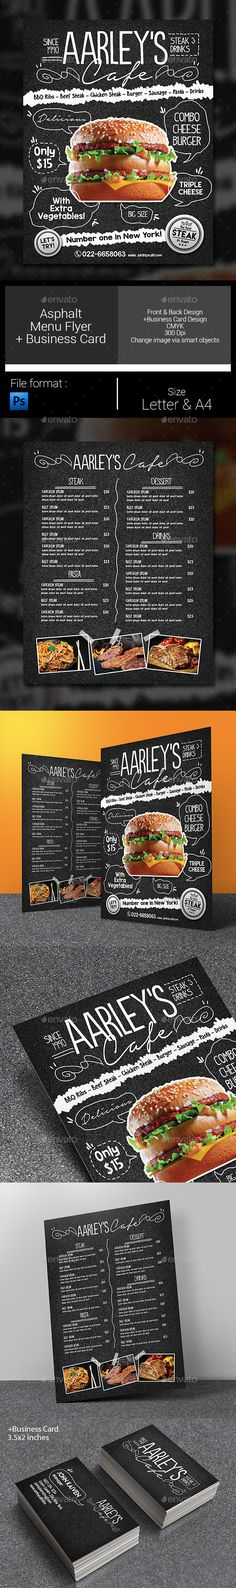 Asphalt Food Menu Flyer Template #design Download: http://graphicriver.net/item/asphalt-food-menu-flyer-template/11647570?ref=ksioks